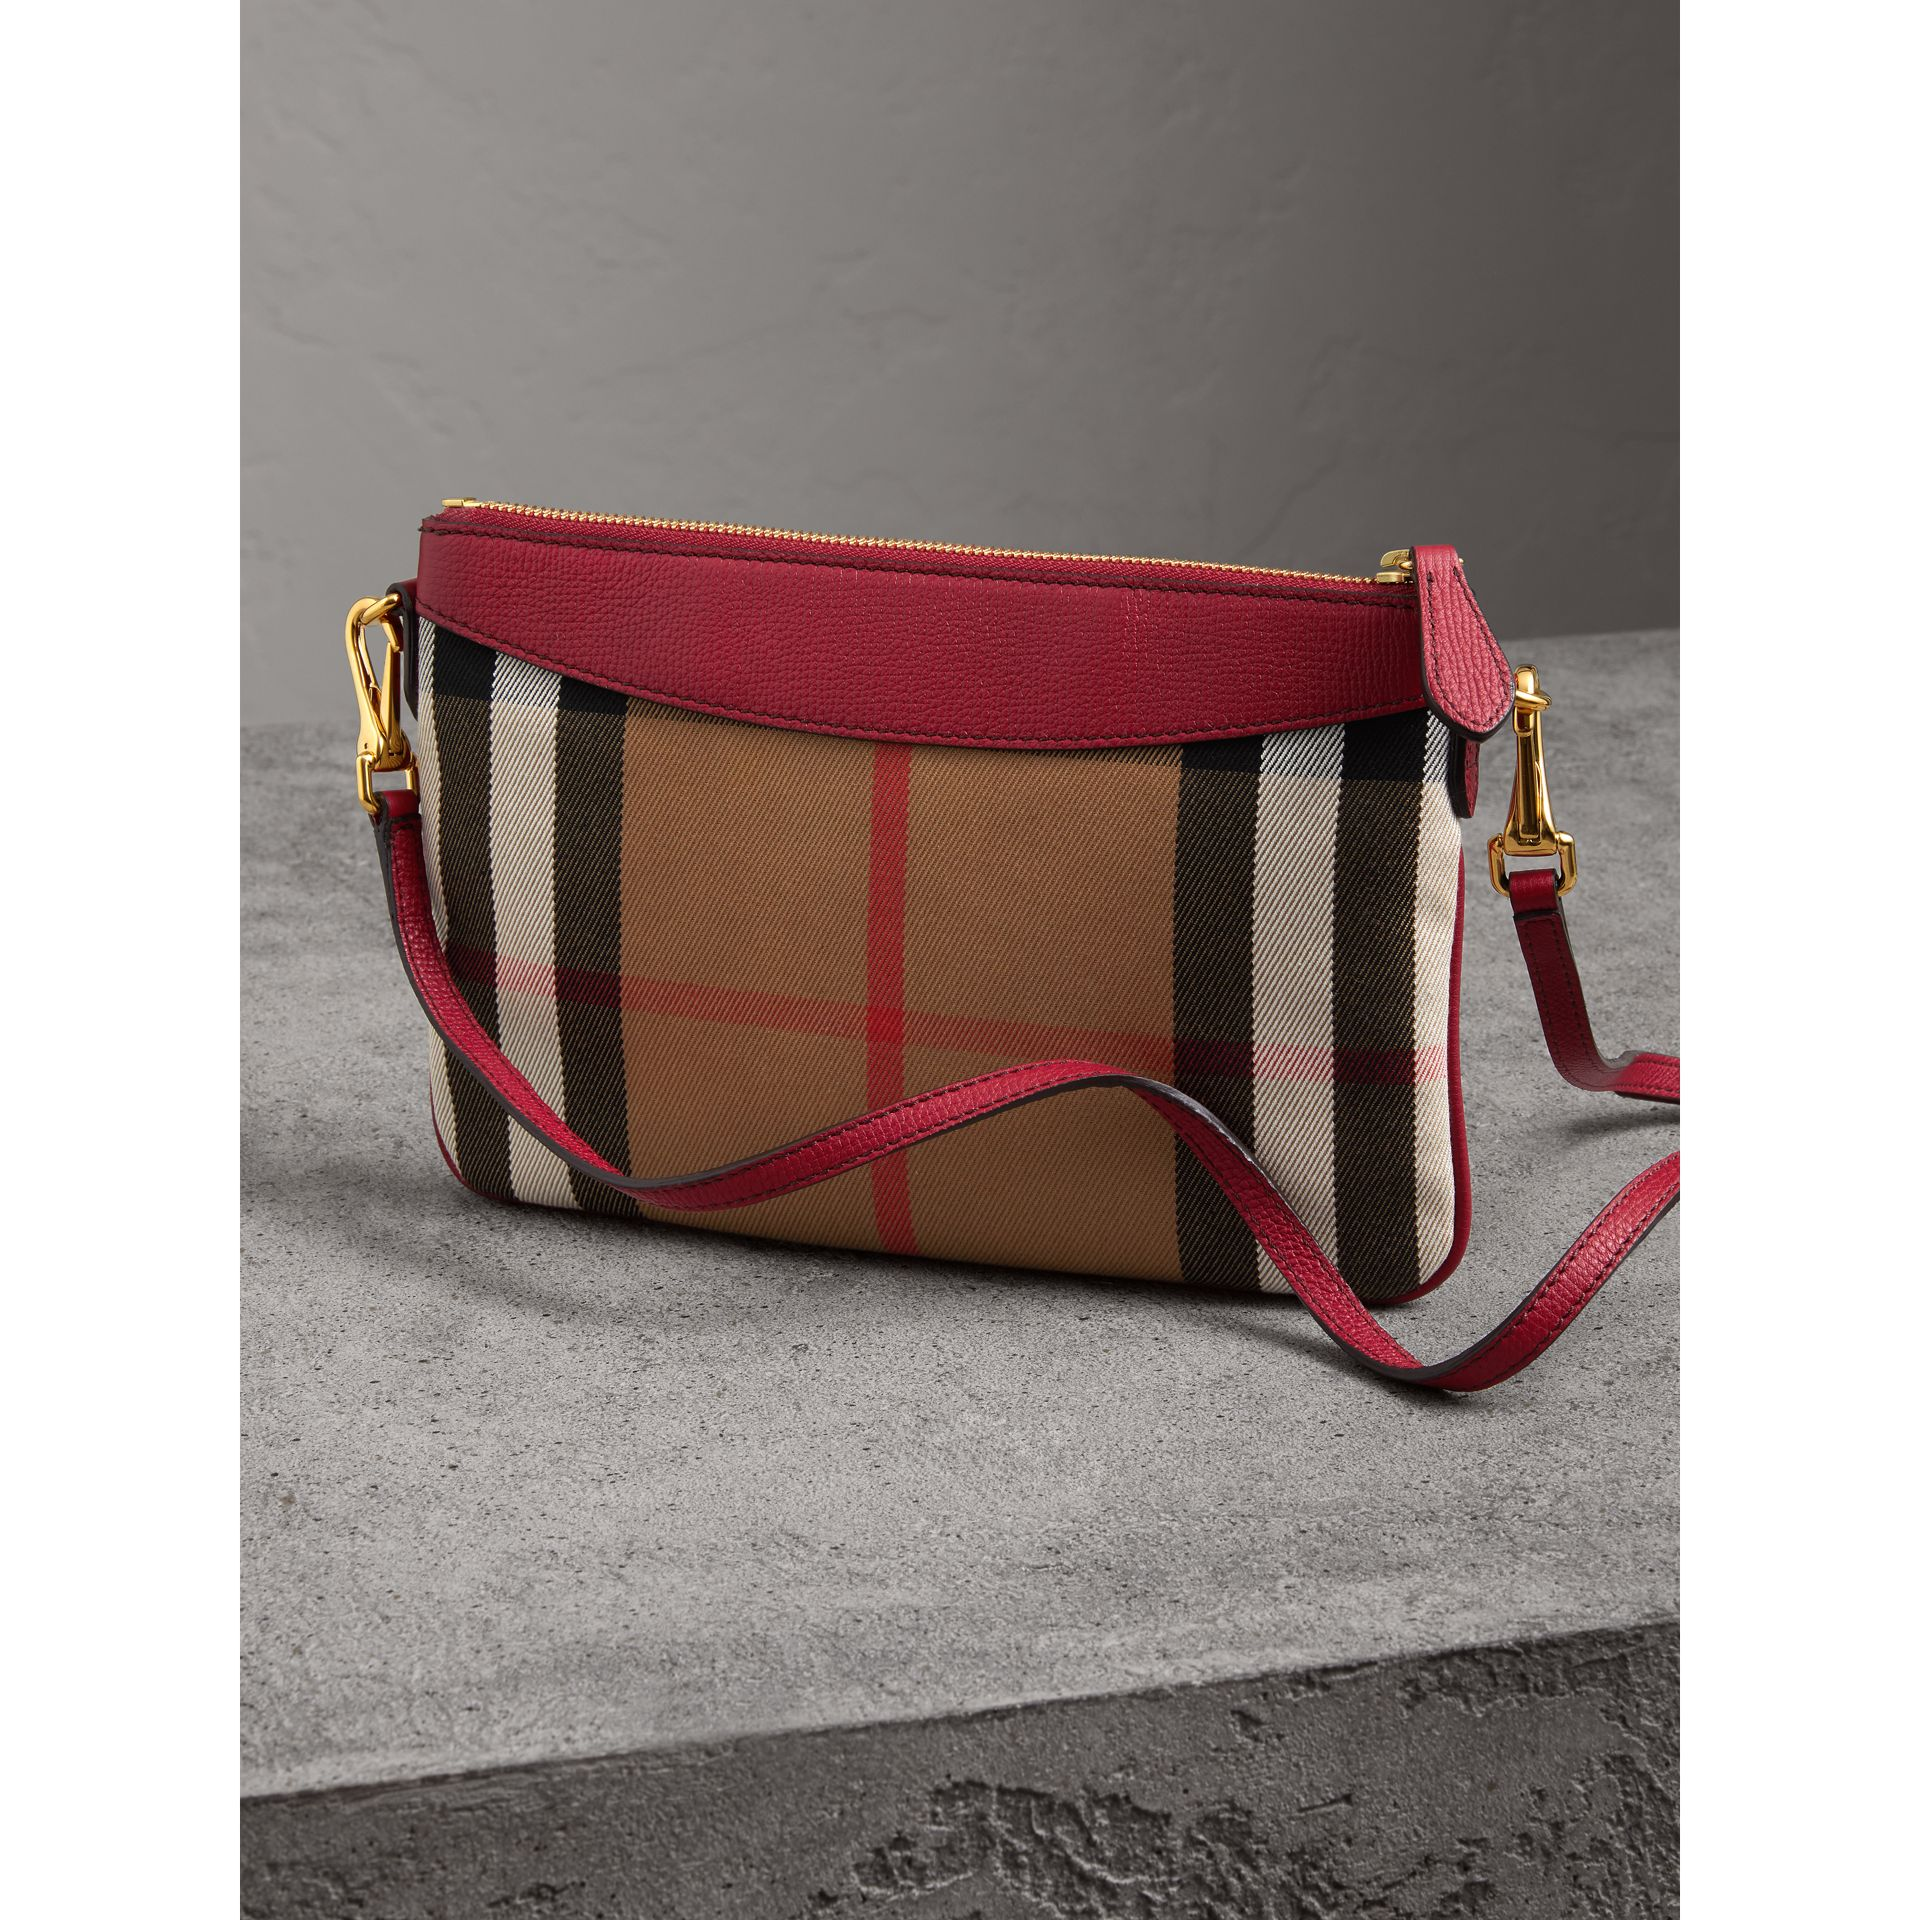 House Check and Leather Clutch Bag in Military Red - Women | Burberry Singapore - gallery image 4